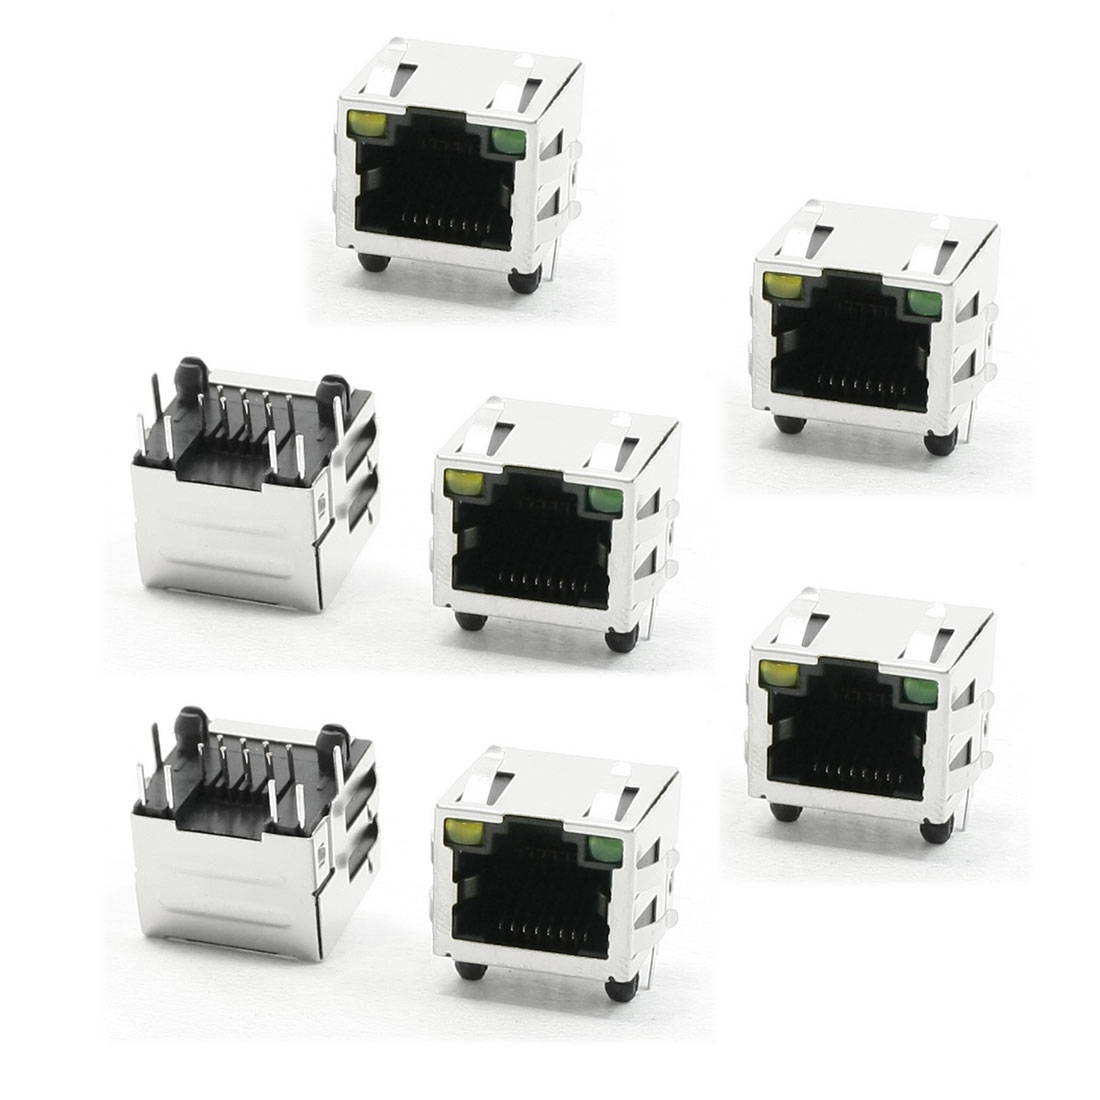 LED Pilot Light Stainless Steel Shielded RJ45 8P8C PCB Jack LAN Socket 7 Pcs